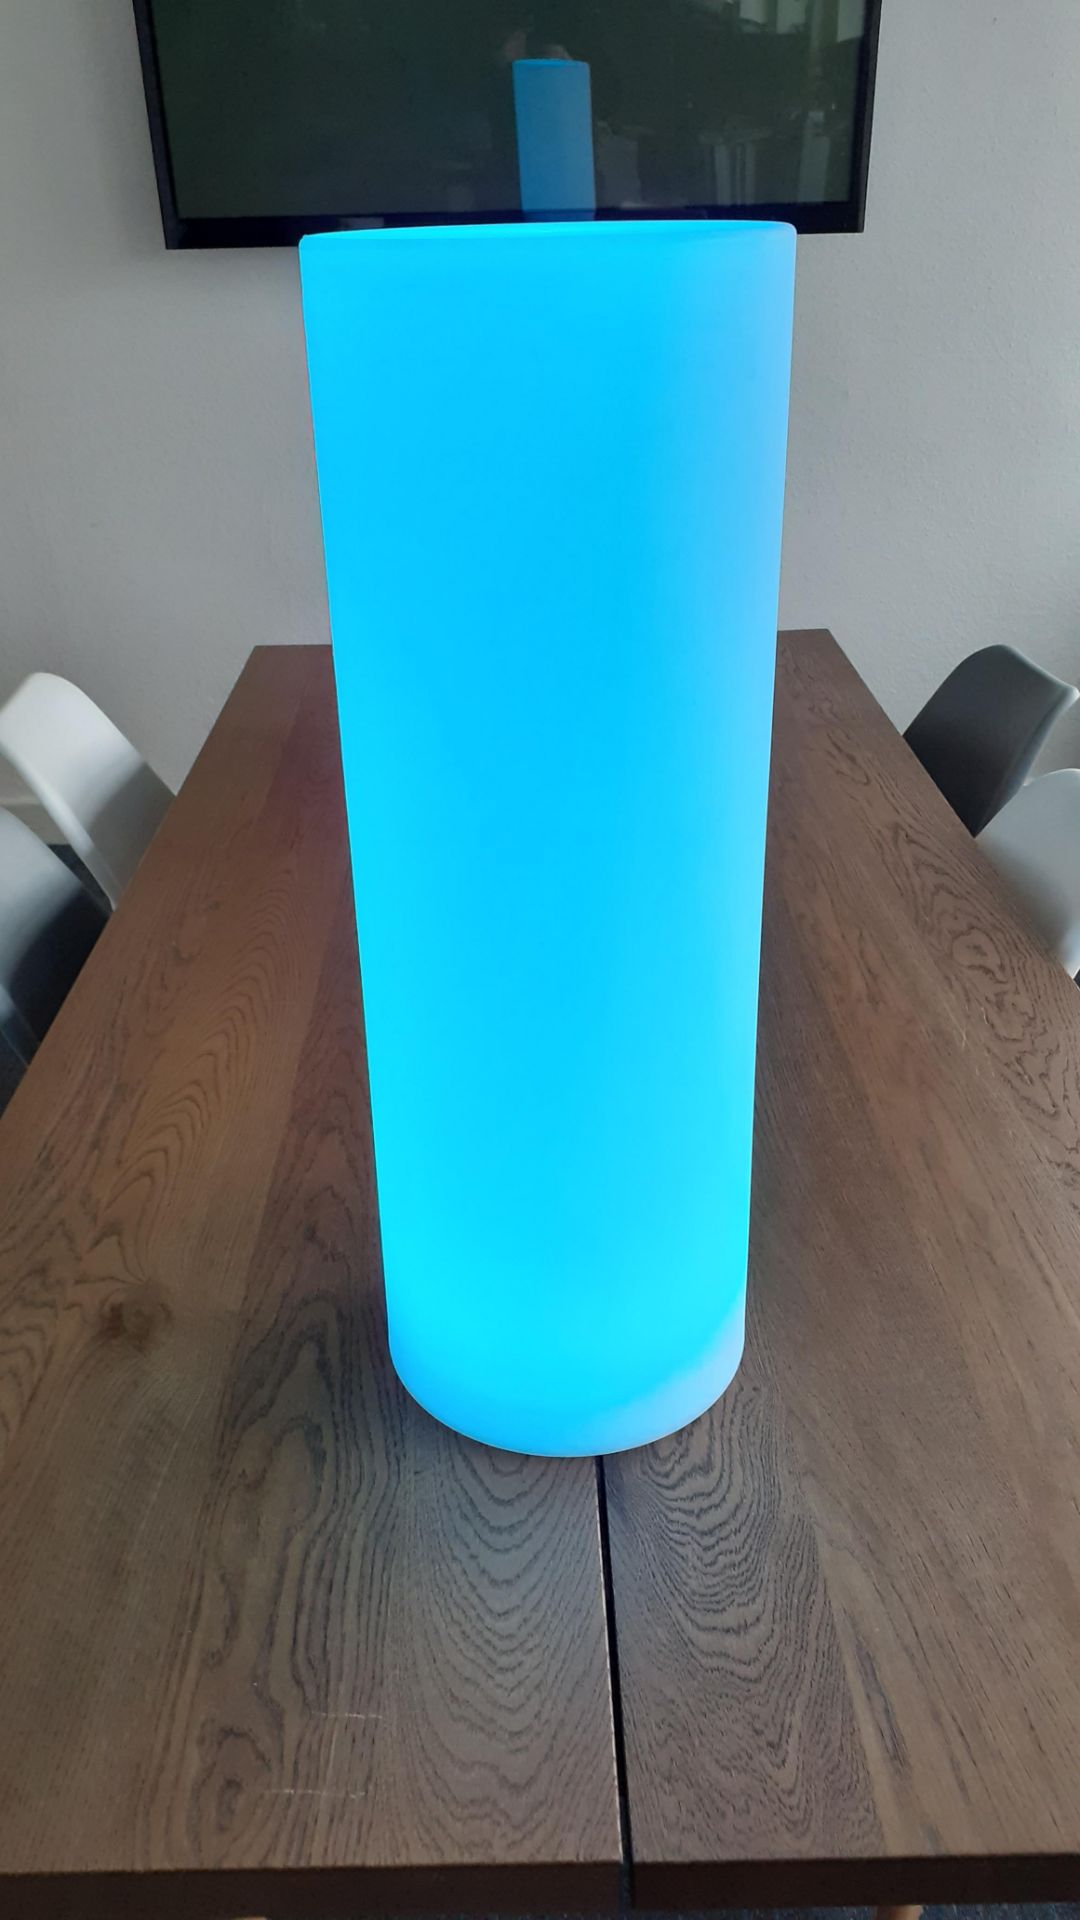 A Playlearn SLUF 70cm Light Up Cylinder with Power Supply and Remote Control (good condition, - Image 7 of 10